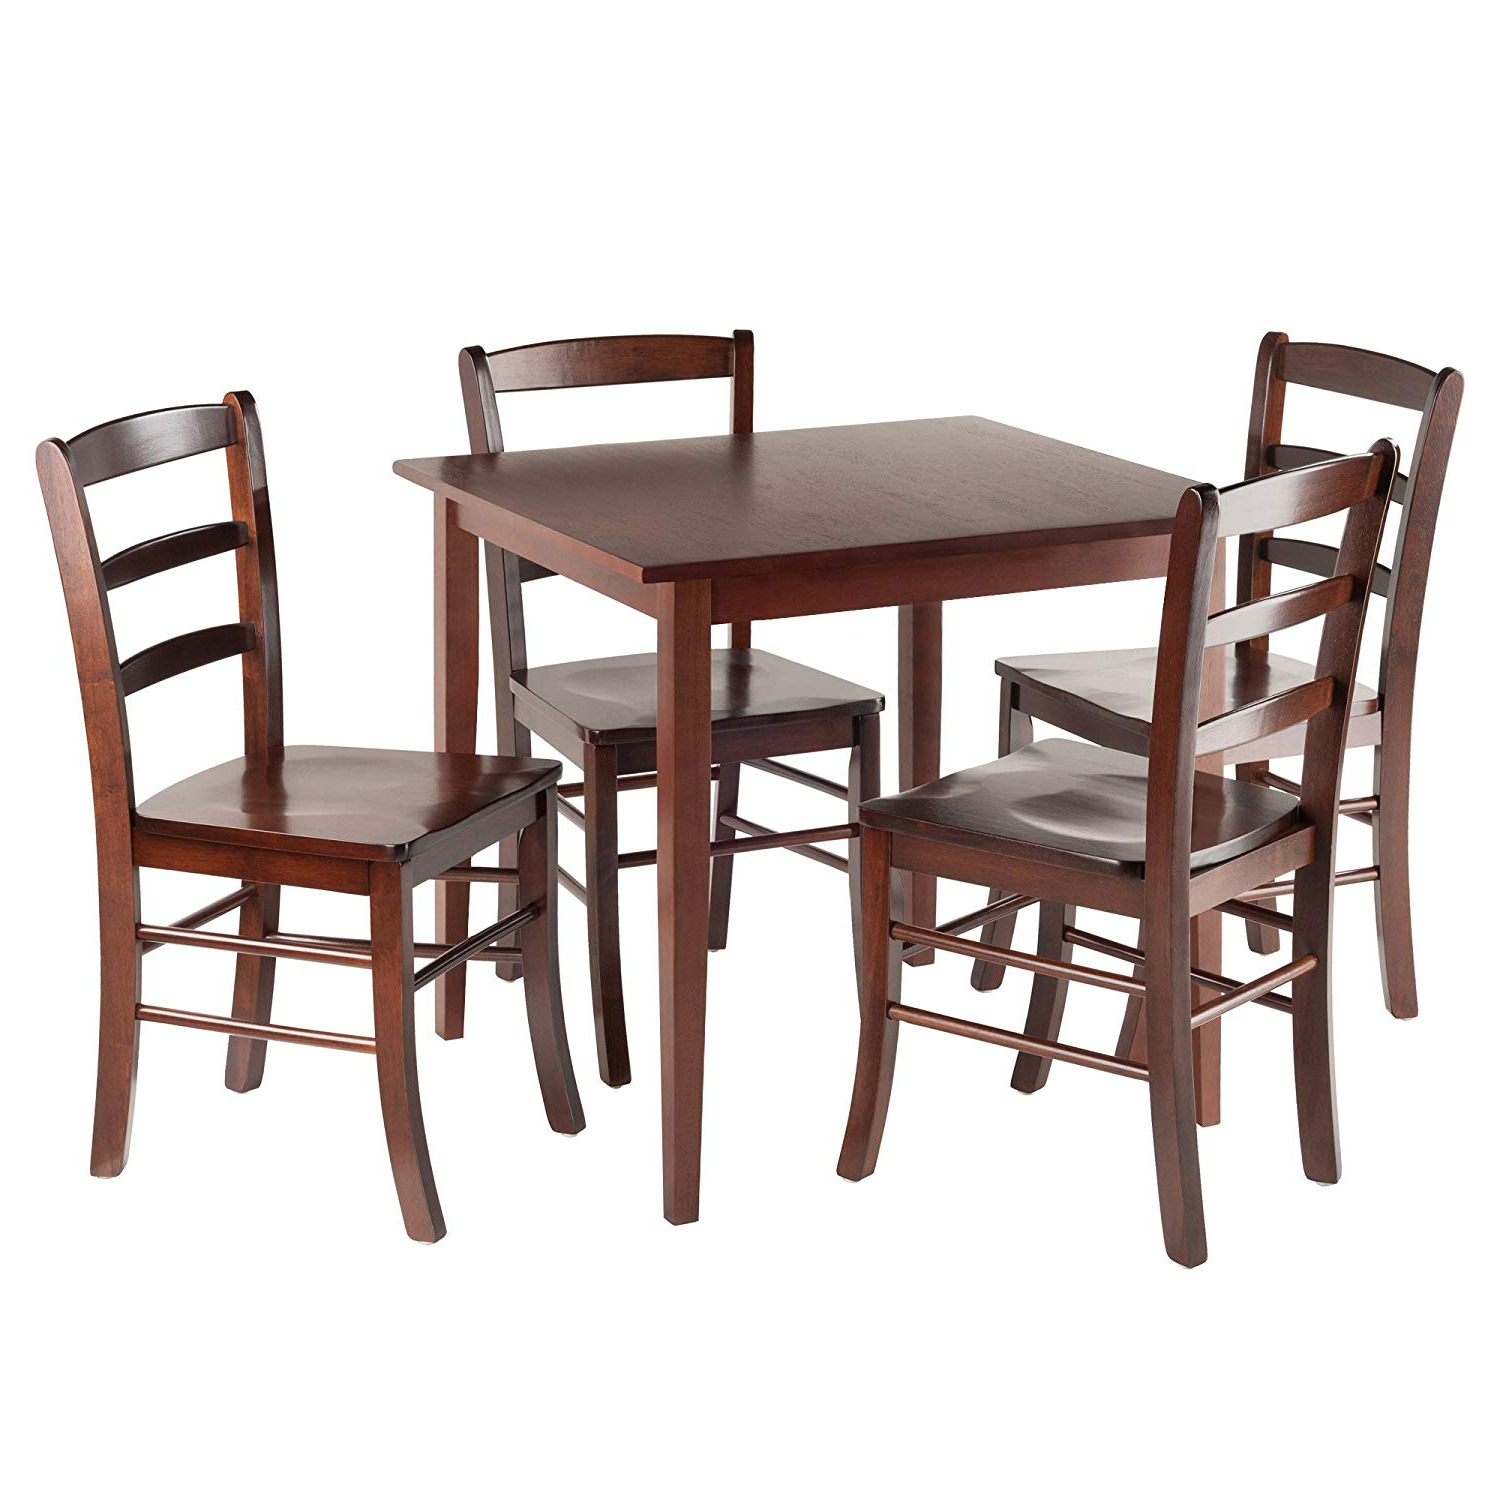 Most Current Walnut And Antique White Finish Contemporary Country Dining Tables For Winsome Groveland Square Dining Table, 4 Chairs, Antique Walnut (Gallery 18 of 30)